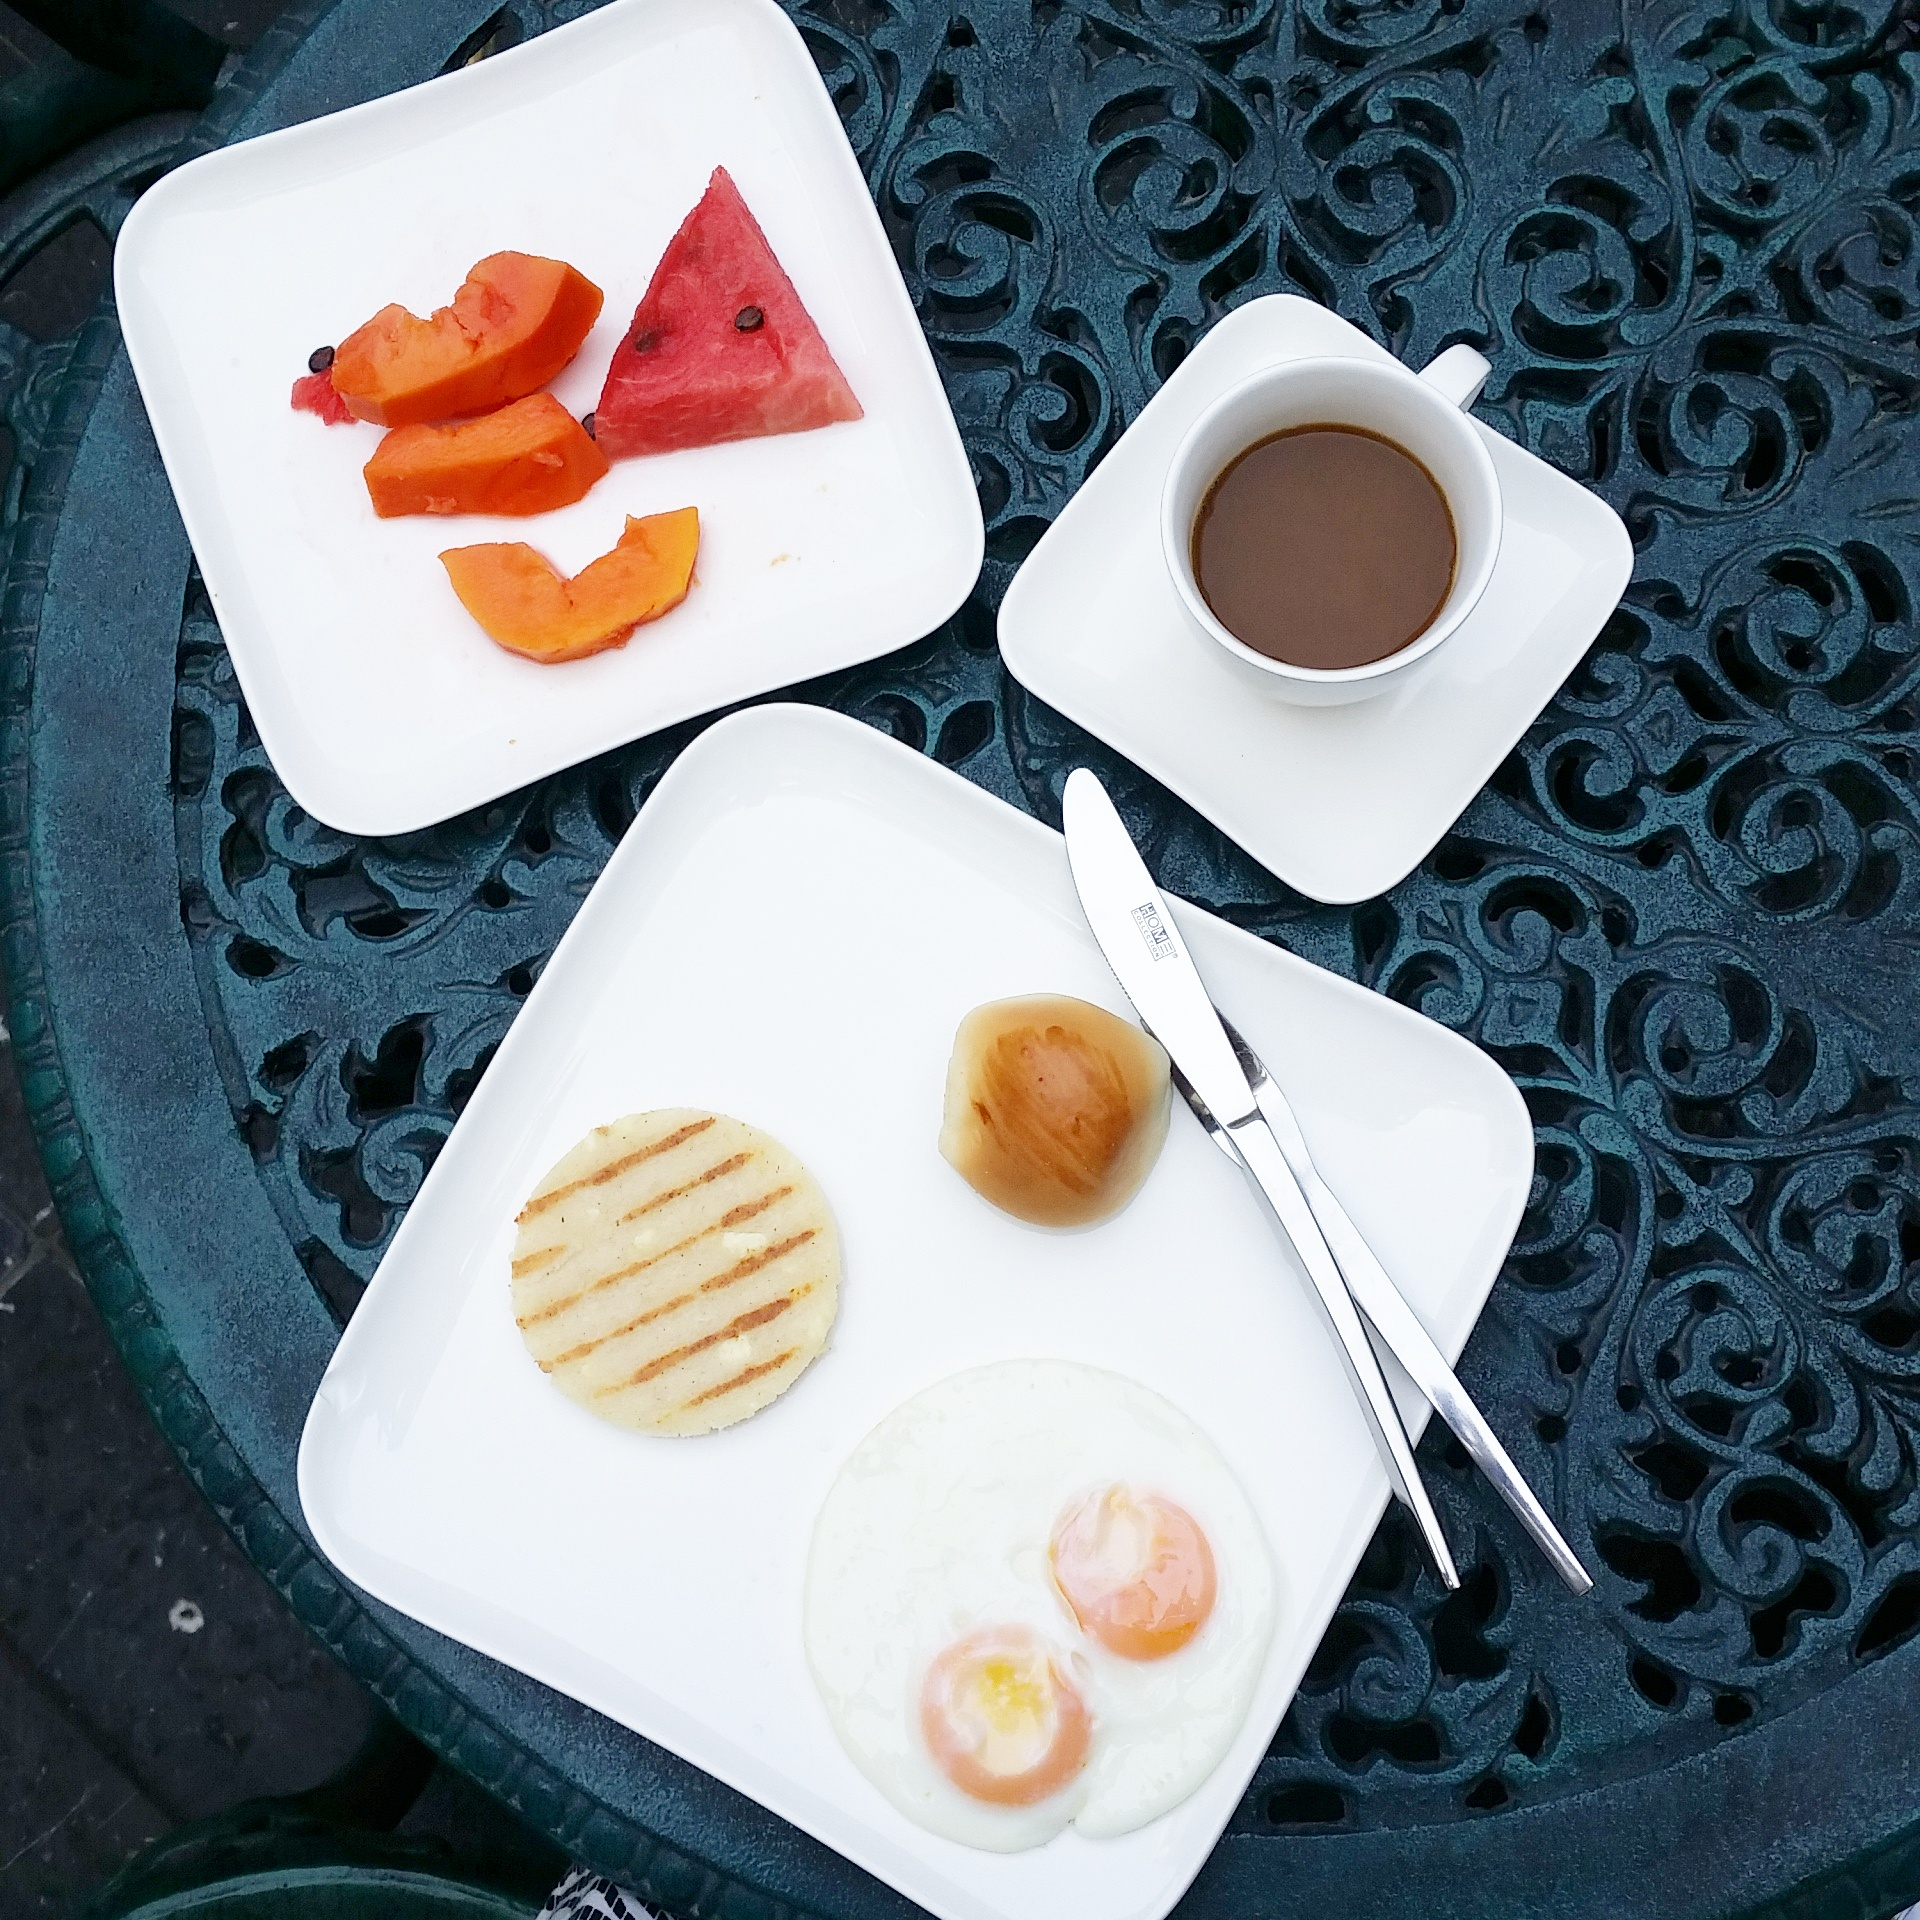 My very simple but delicious breakfast at the Hotel Antilleria.